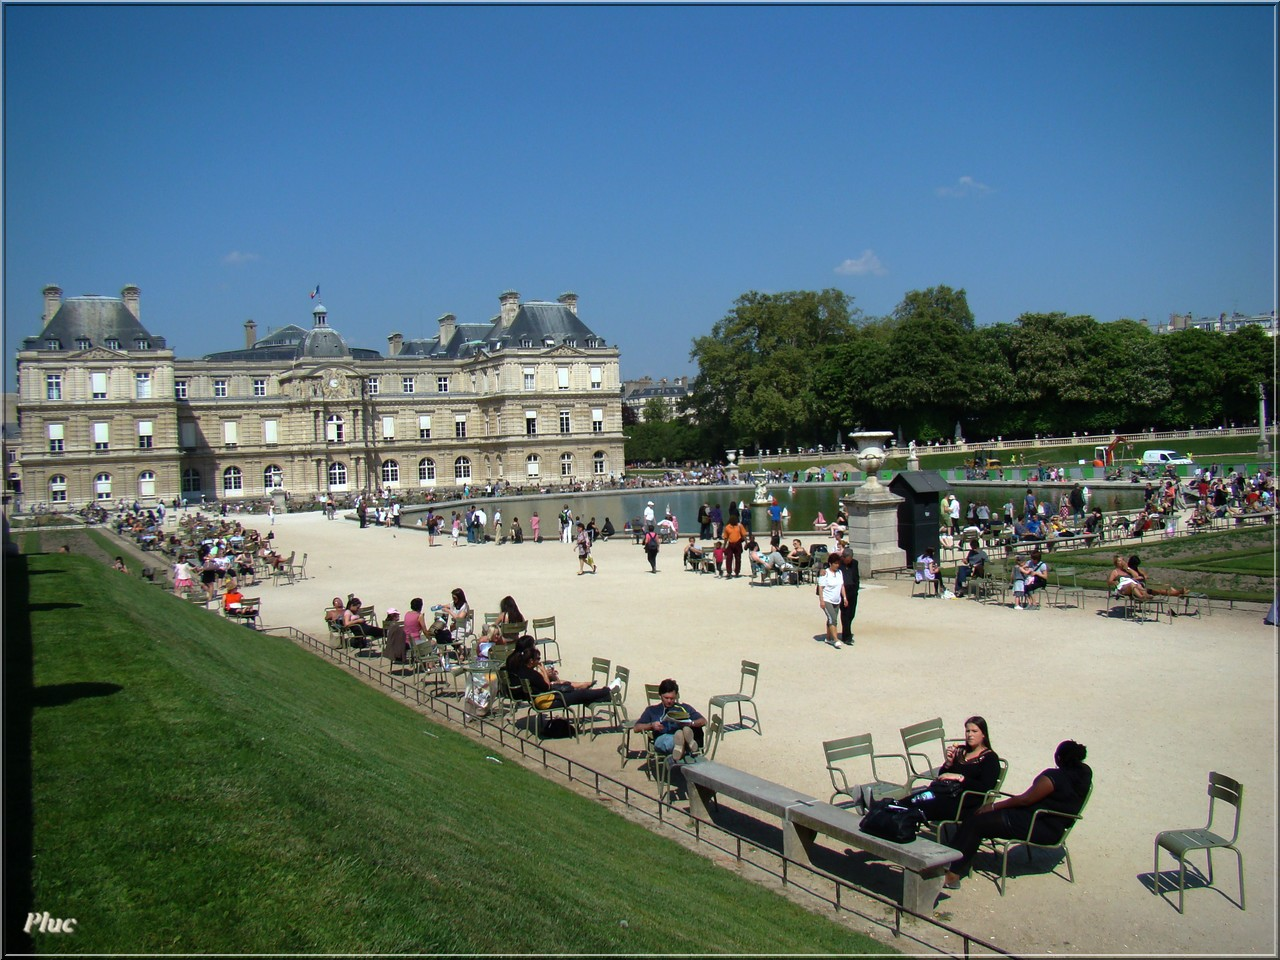 Chaise jardin du luxembourg images for Chaise jardin du luxembourg